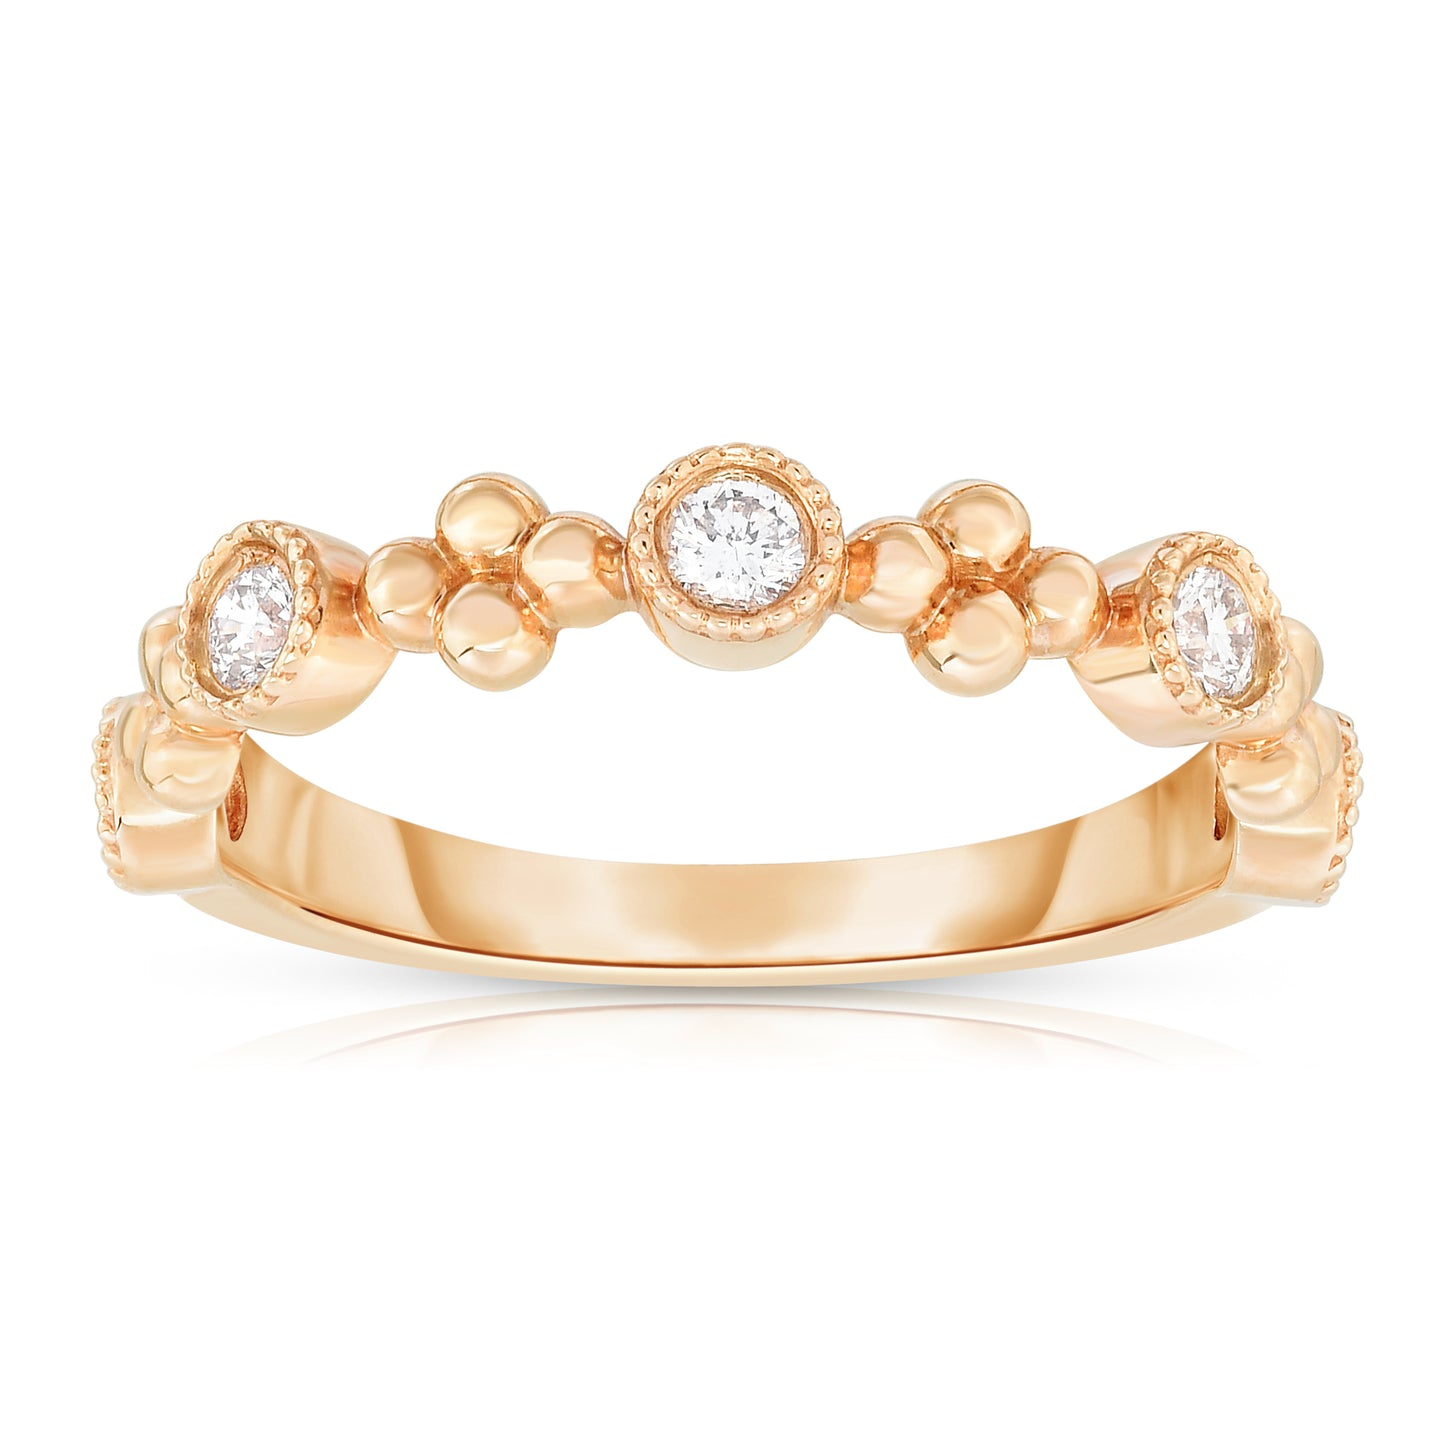 Sabel Collection 14K Rose Gold Bezel Set Diamond Ring with Floral Accents